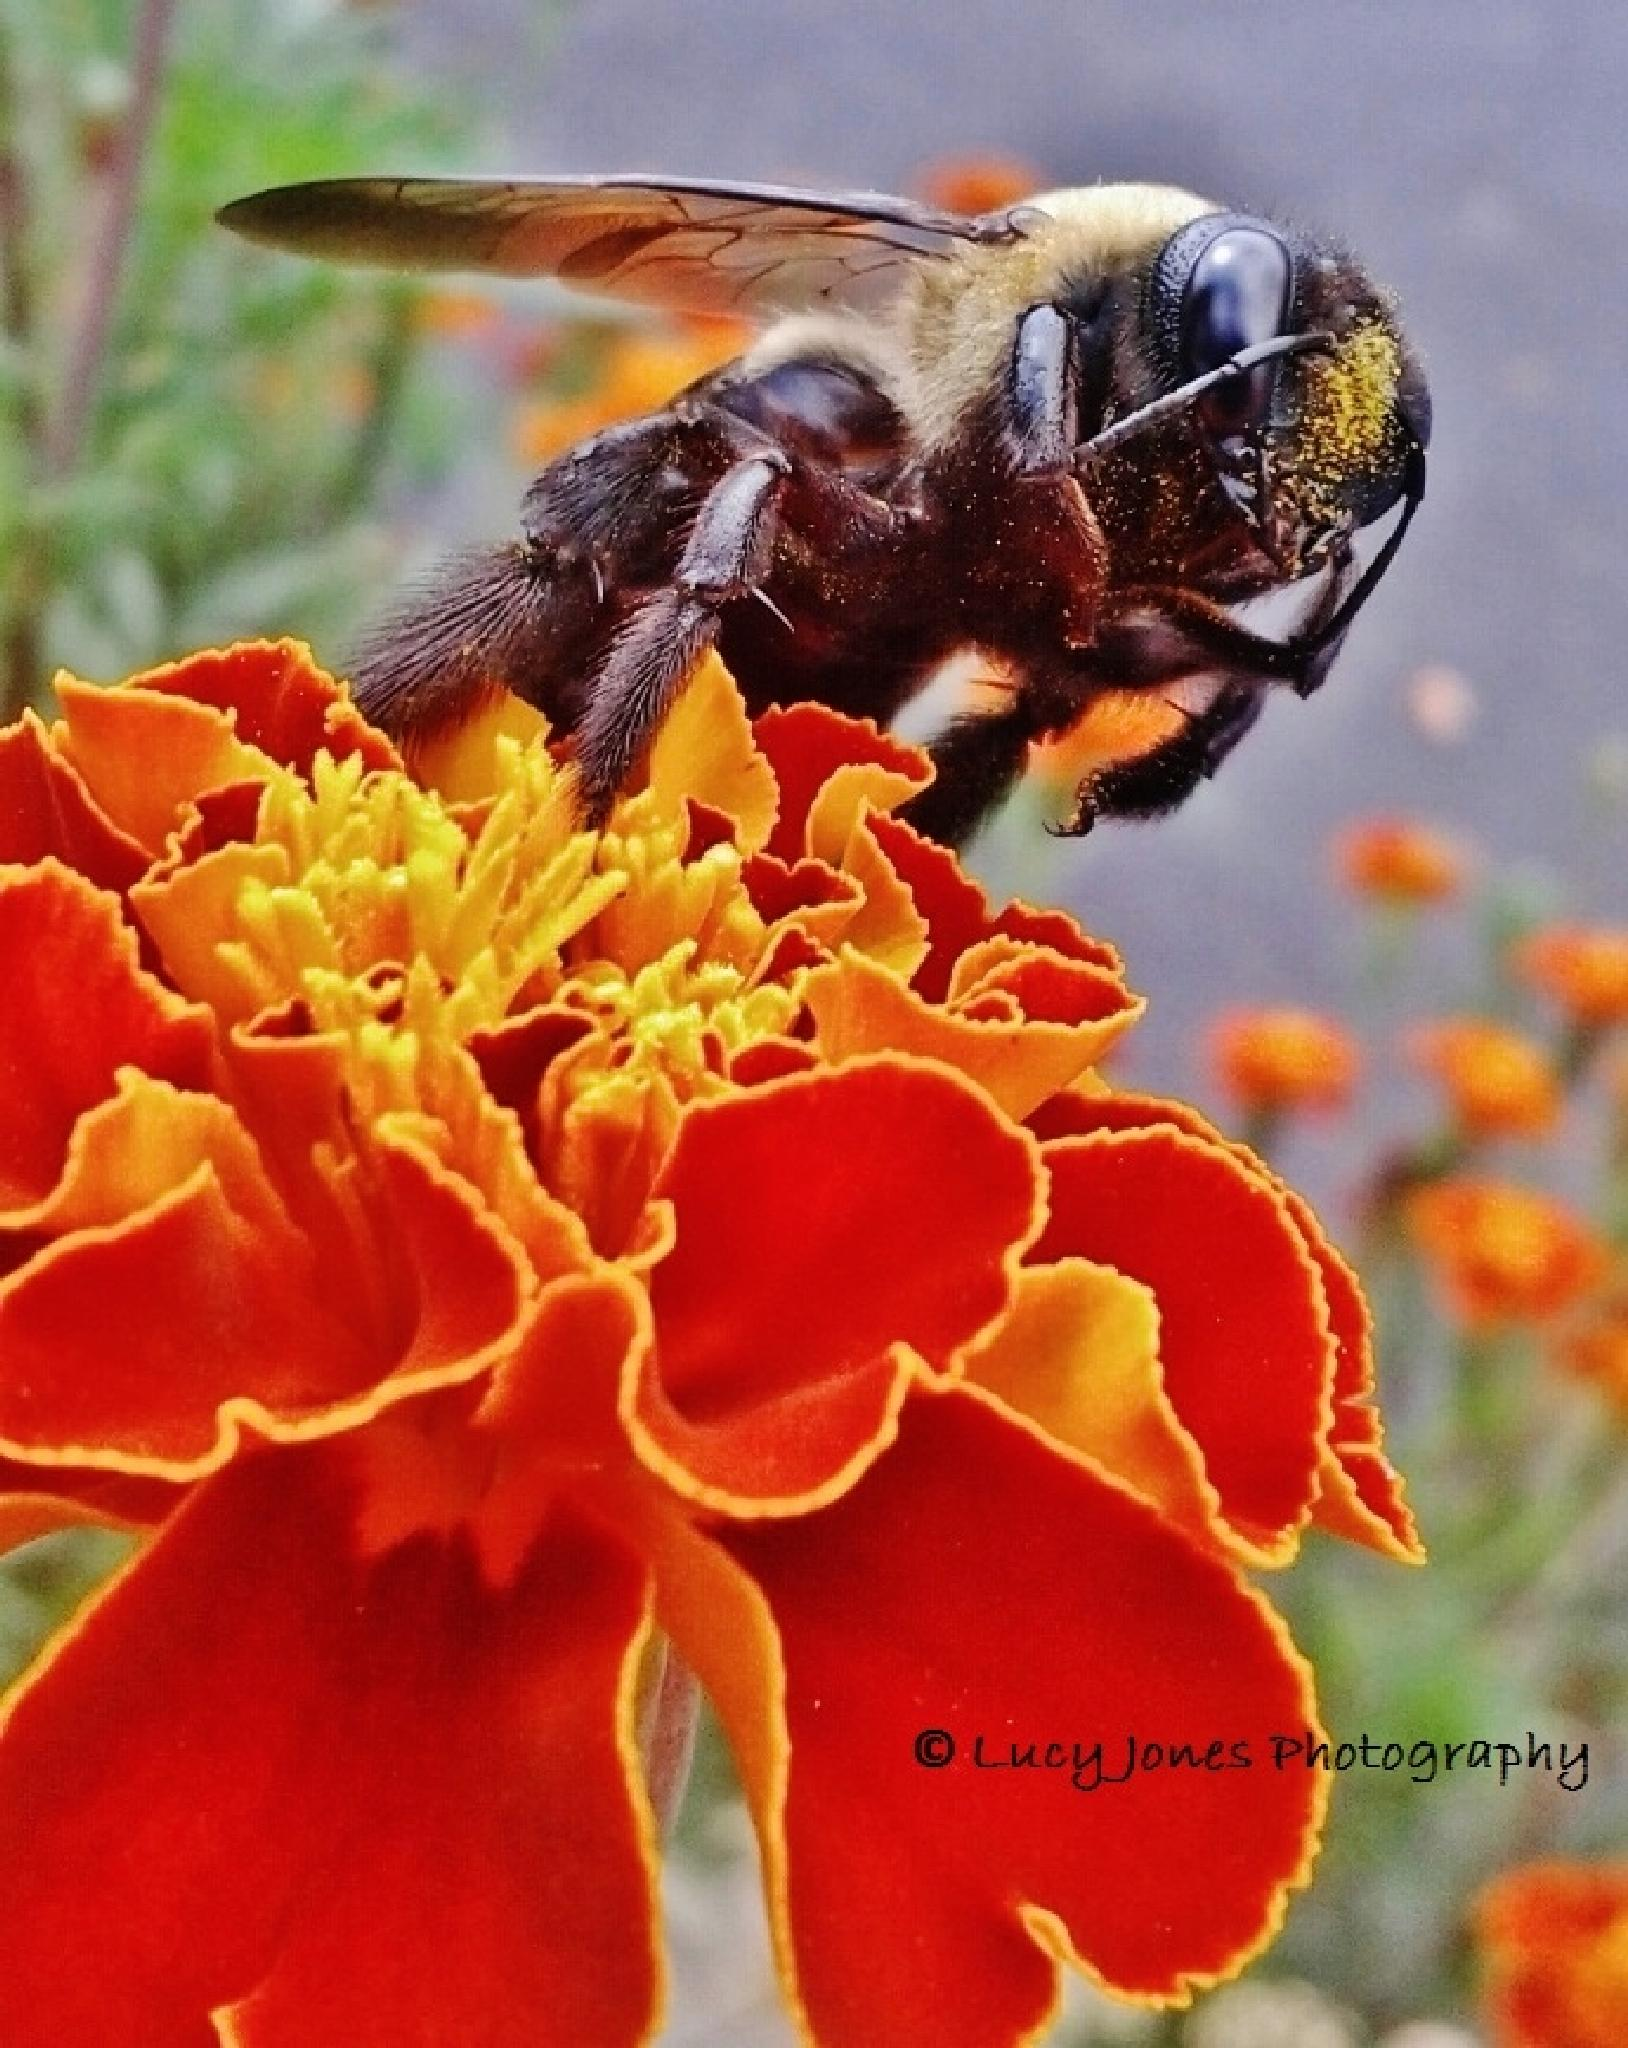 Bumble Bee On Marigold by Lucy Jones Photography